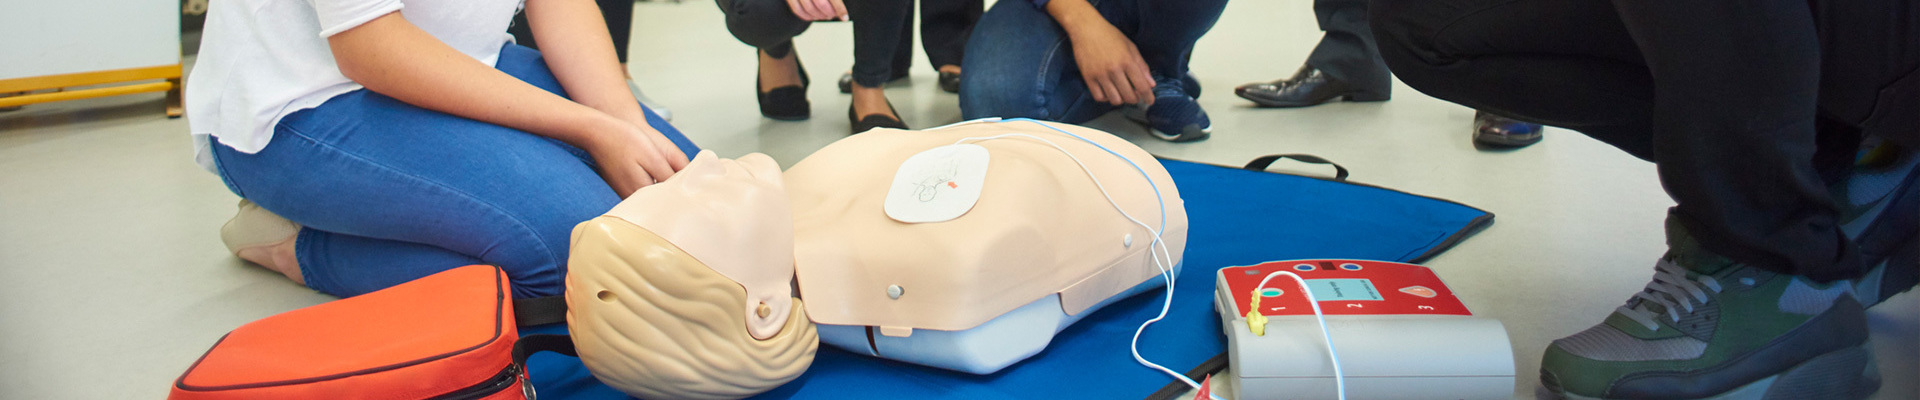 First aid Training Provider South Wales, Health and Social Care Training  South Wales, Training Company South Wales